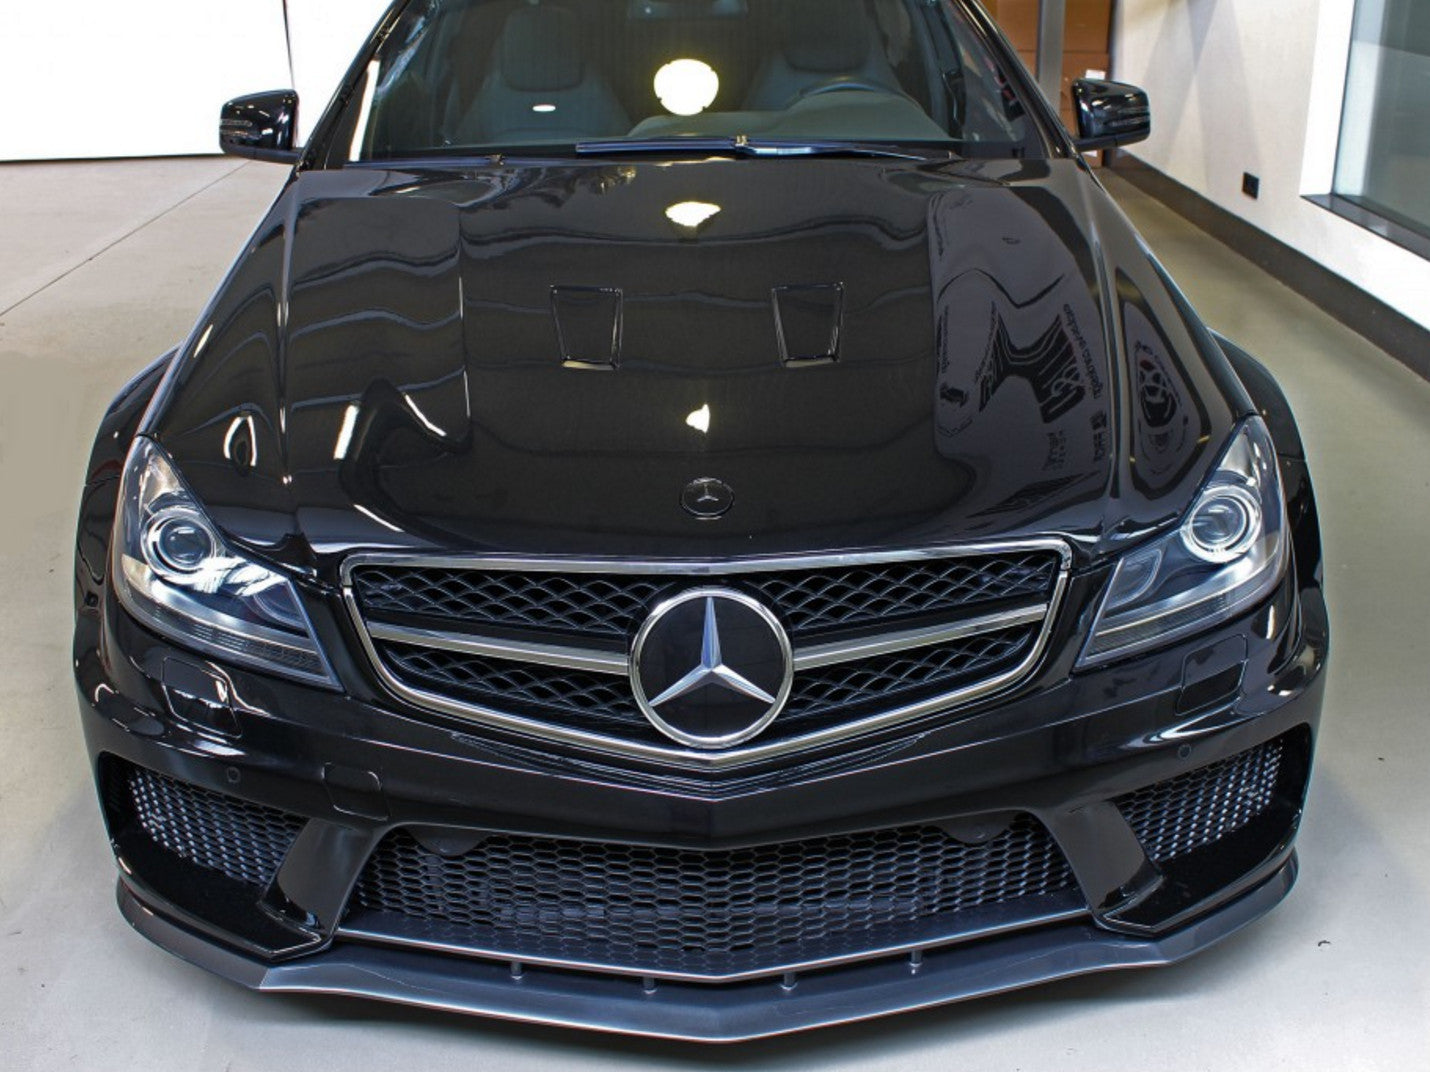 BLACK SERIES WIDE BODY KIT - W204 C CLASS AMG C63 COUPE / Body Kit Only / In Full -  - Yomato Carbon - Montreal Canada